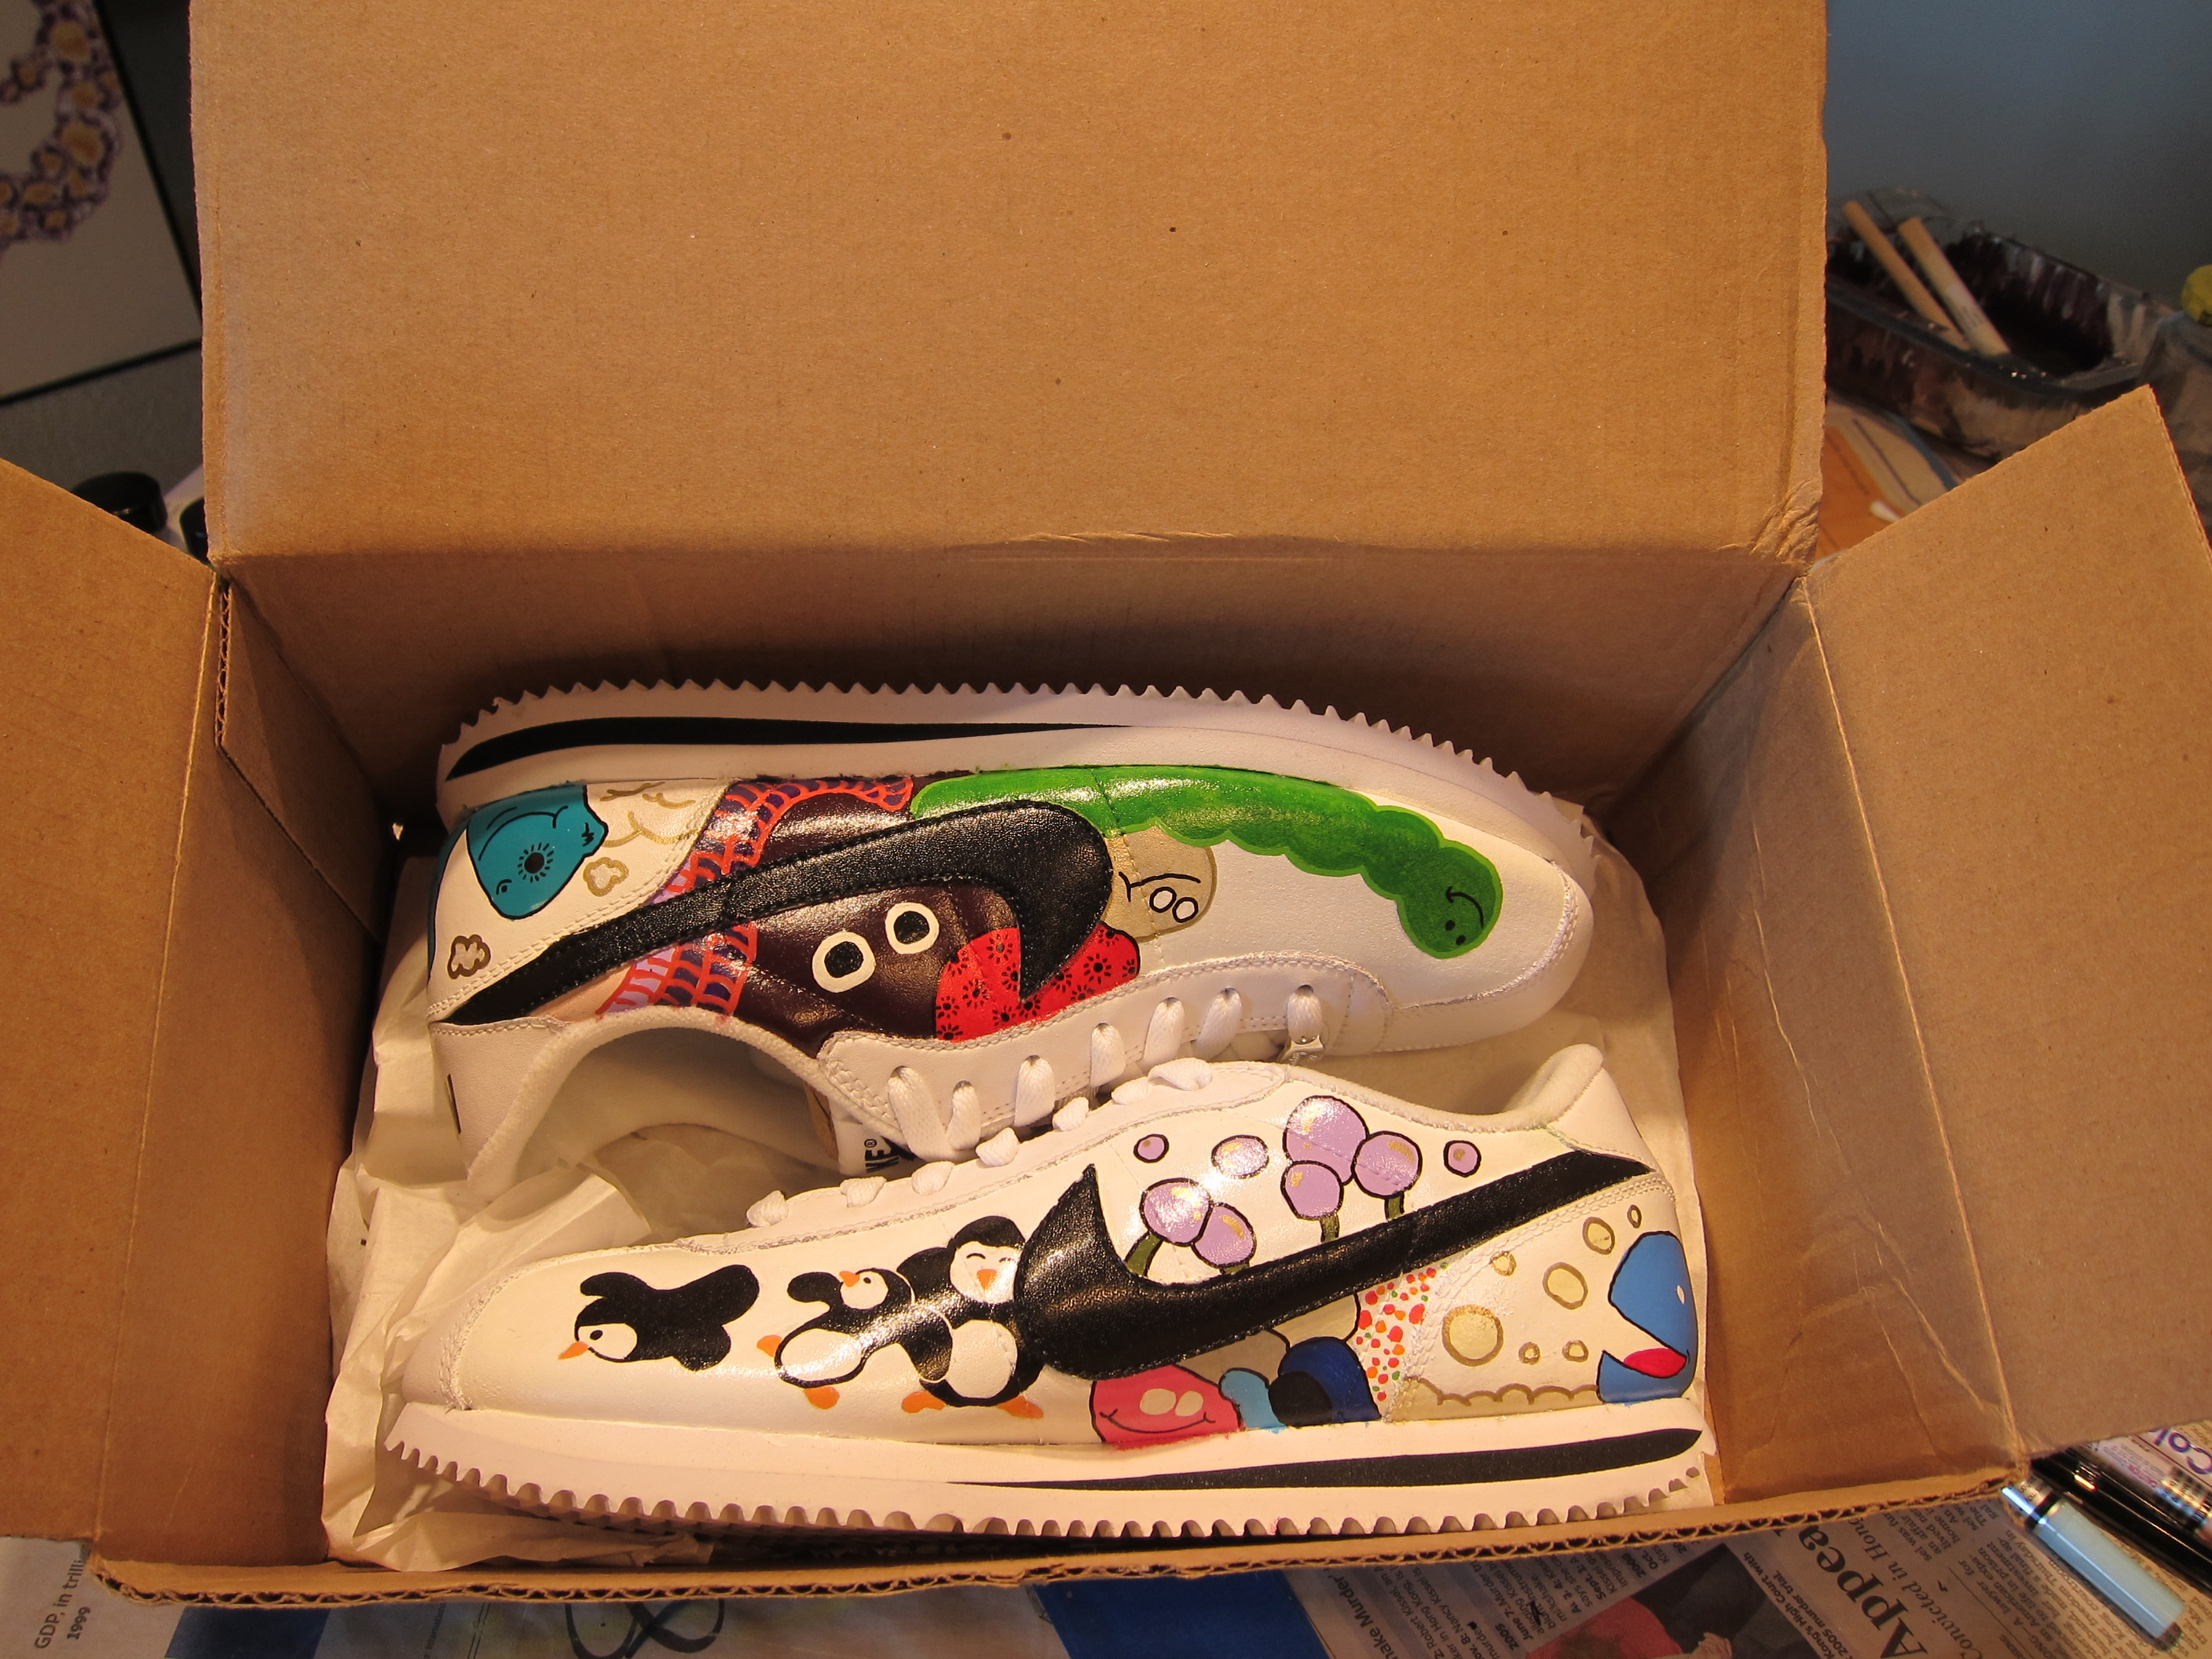 Fresh out of the box sneakers!